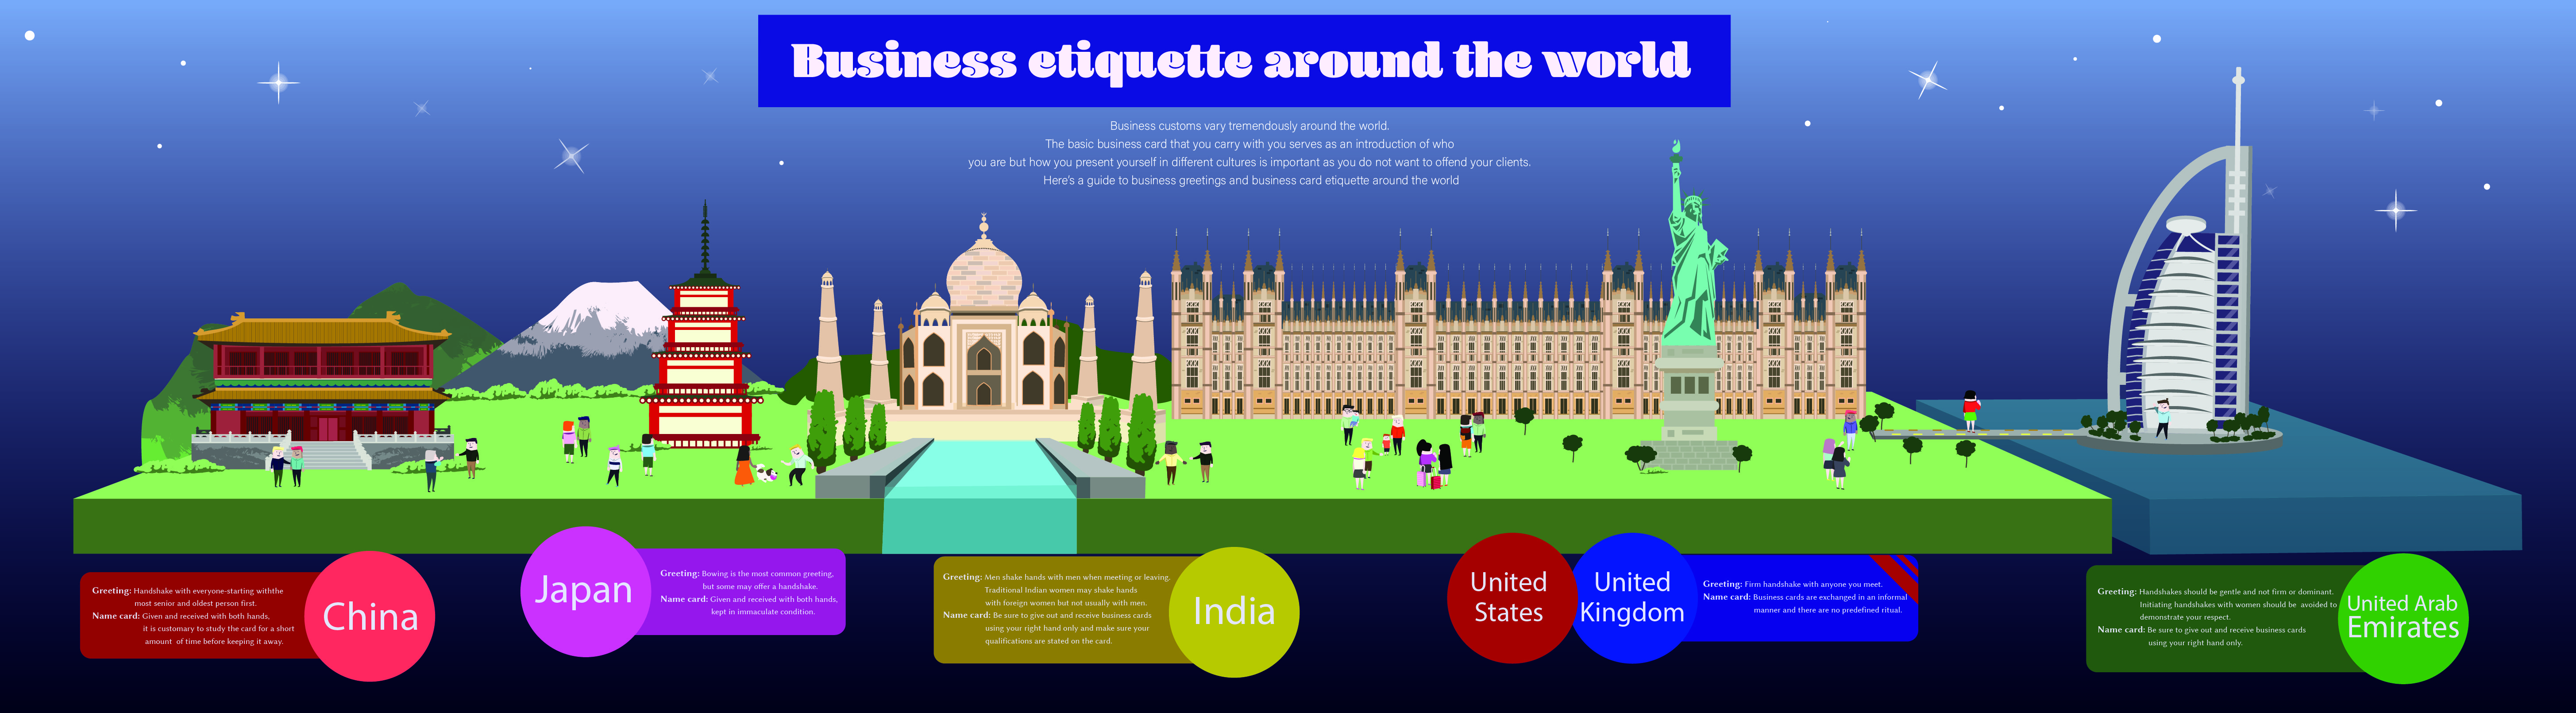 Business etiquette around the world_v2-01-01